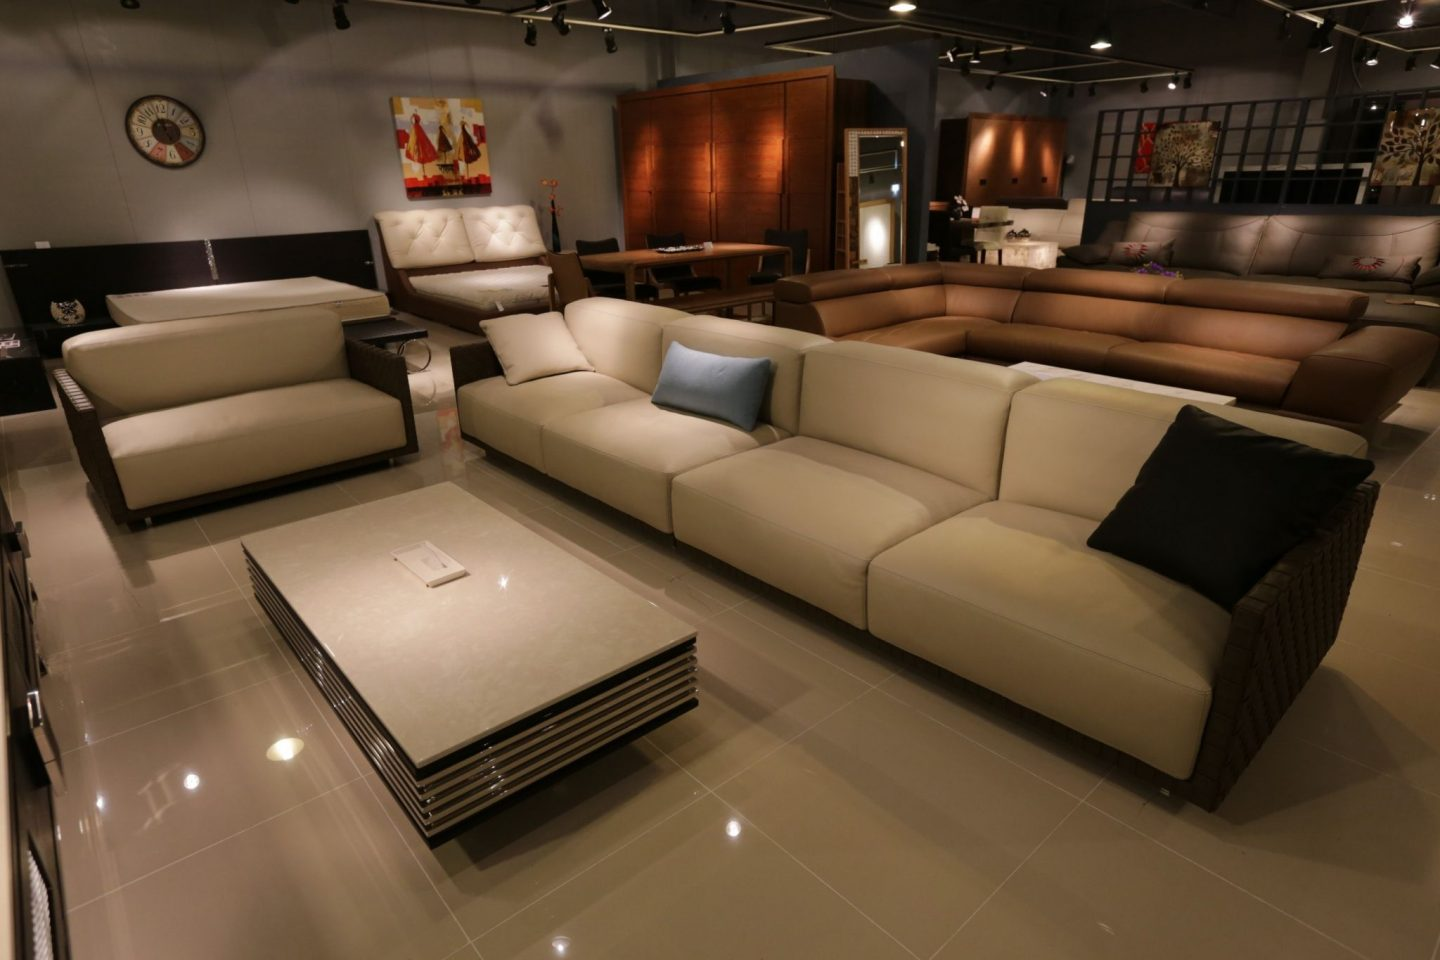 BUYING CONTEMPORARY FURNITURE ONLINE – WHAT YOU NEED TO KNOW